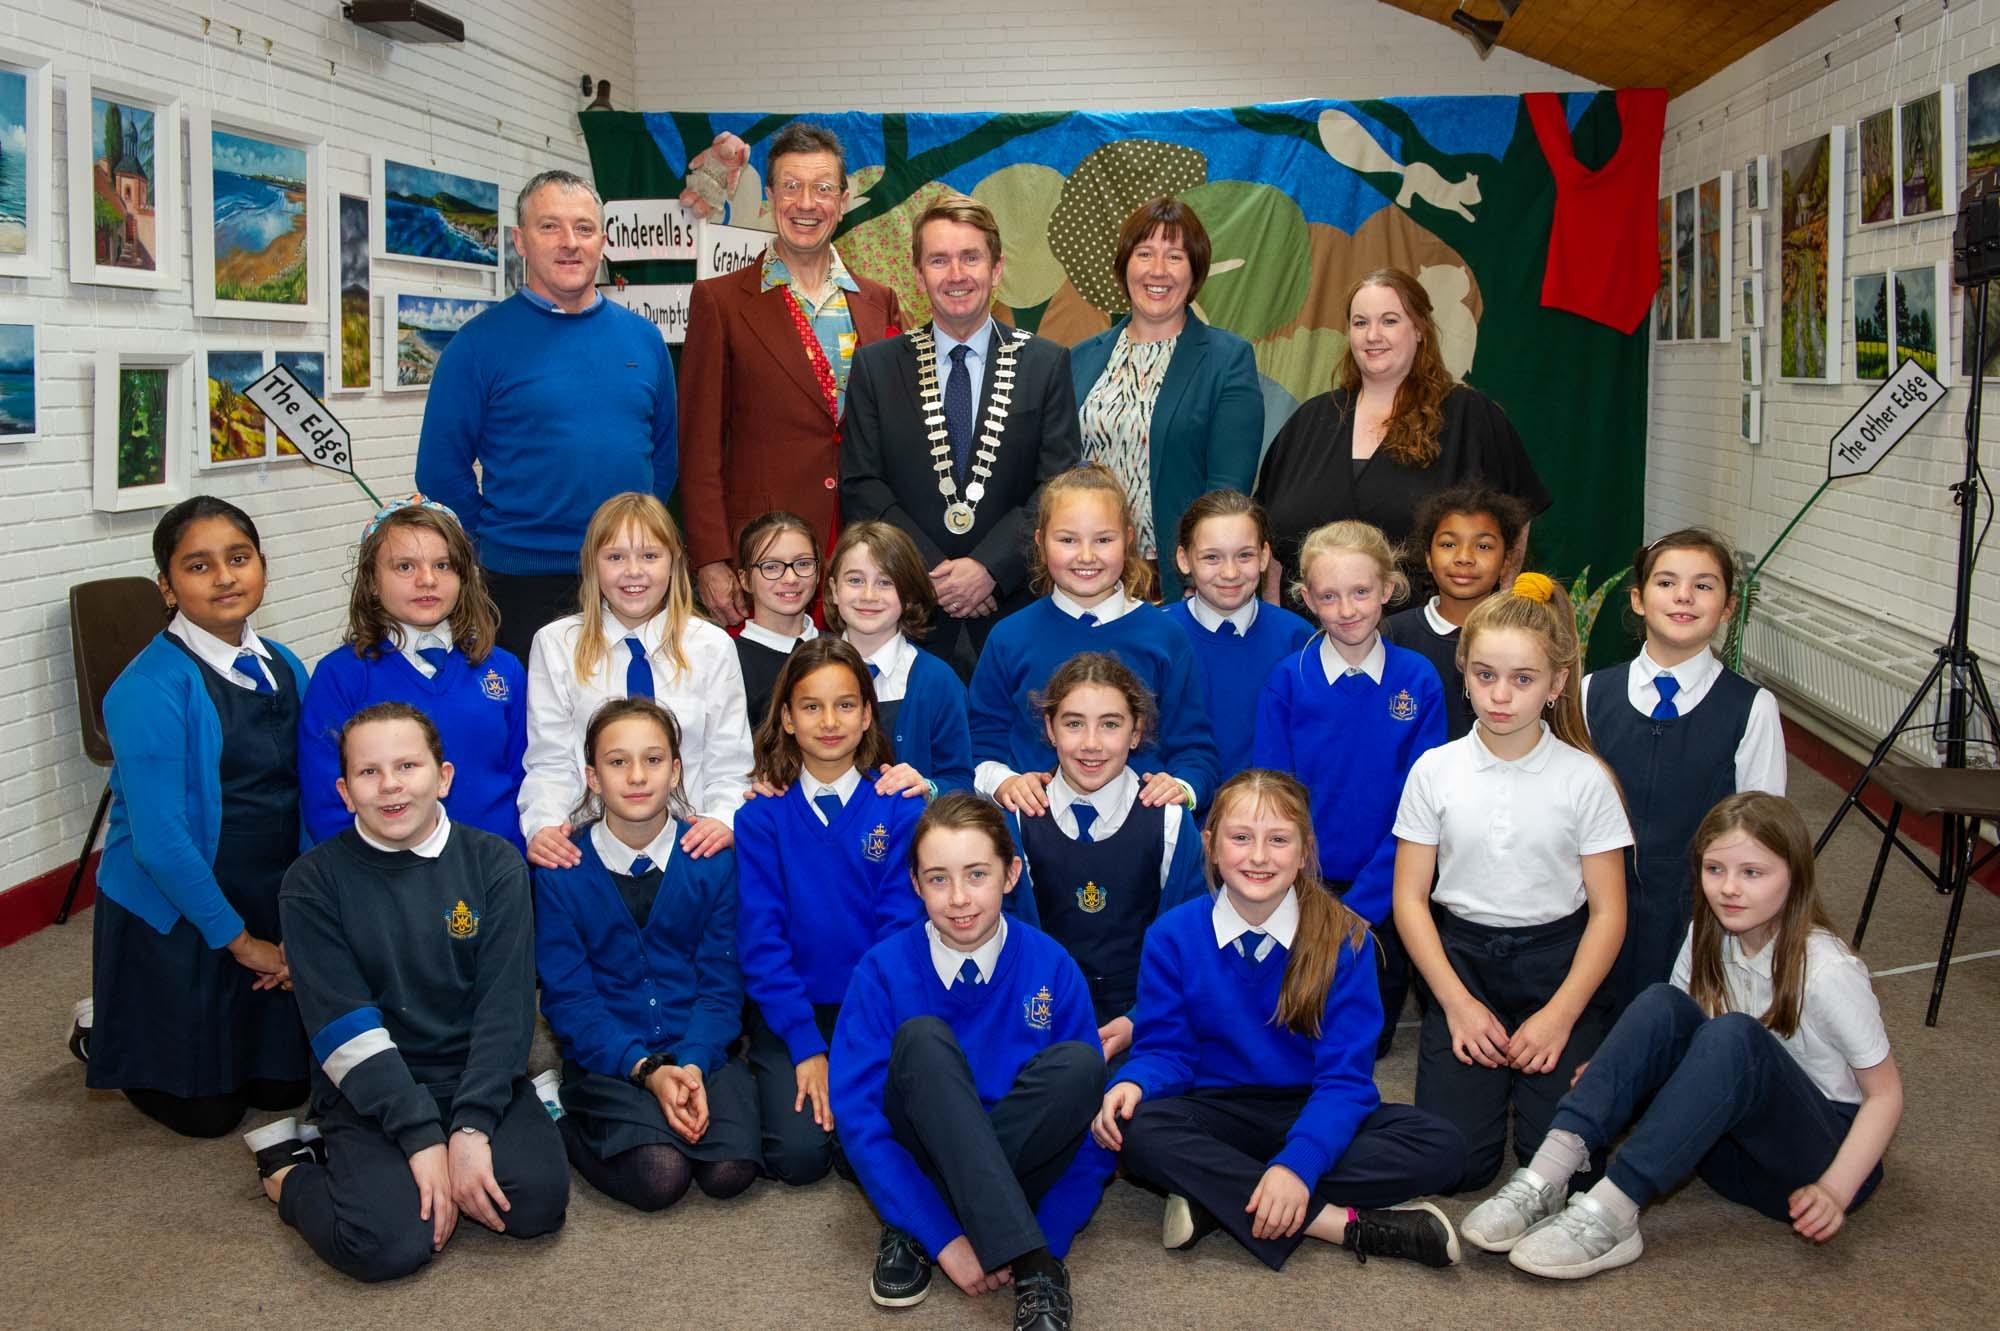 Cathaoirleach Cllr Michael Murphy Launches Children's Book Festival 2019